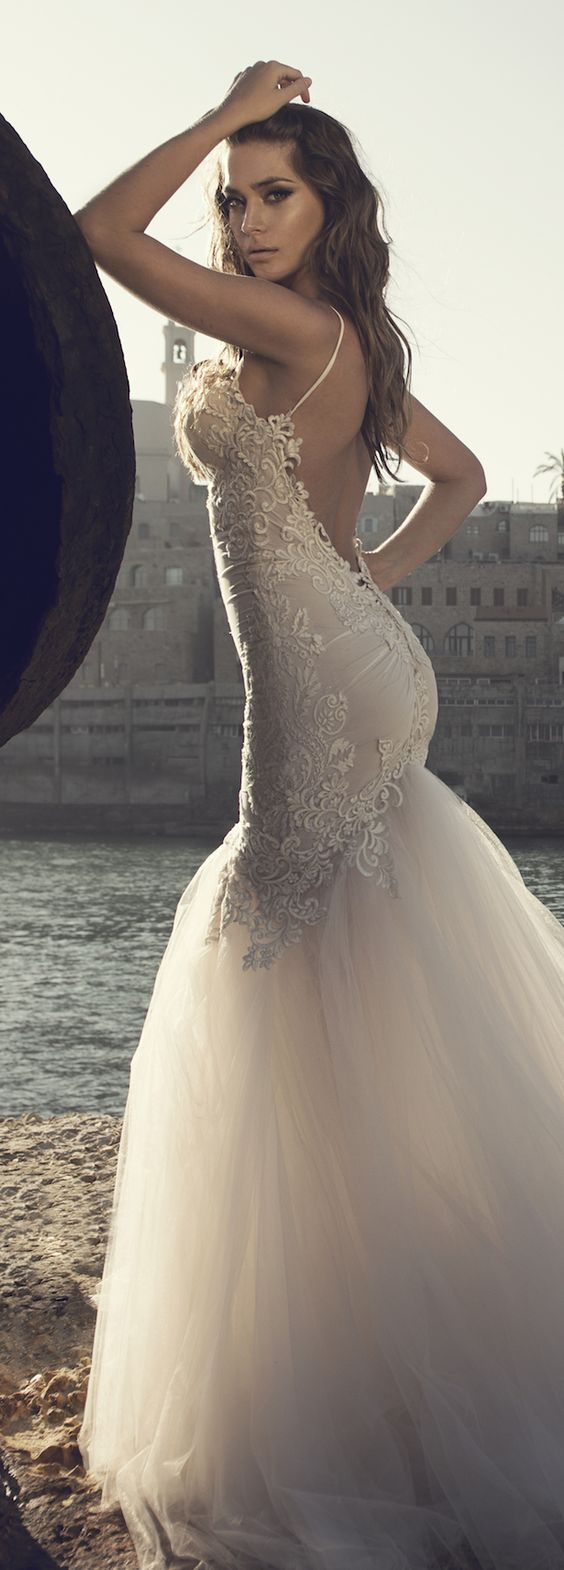 Boda - Wedding Dress Inspiration